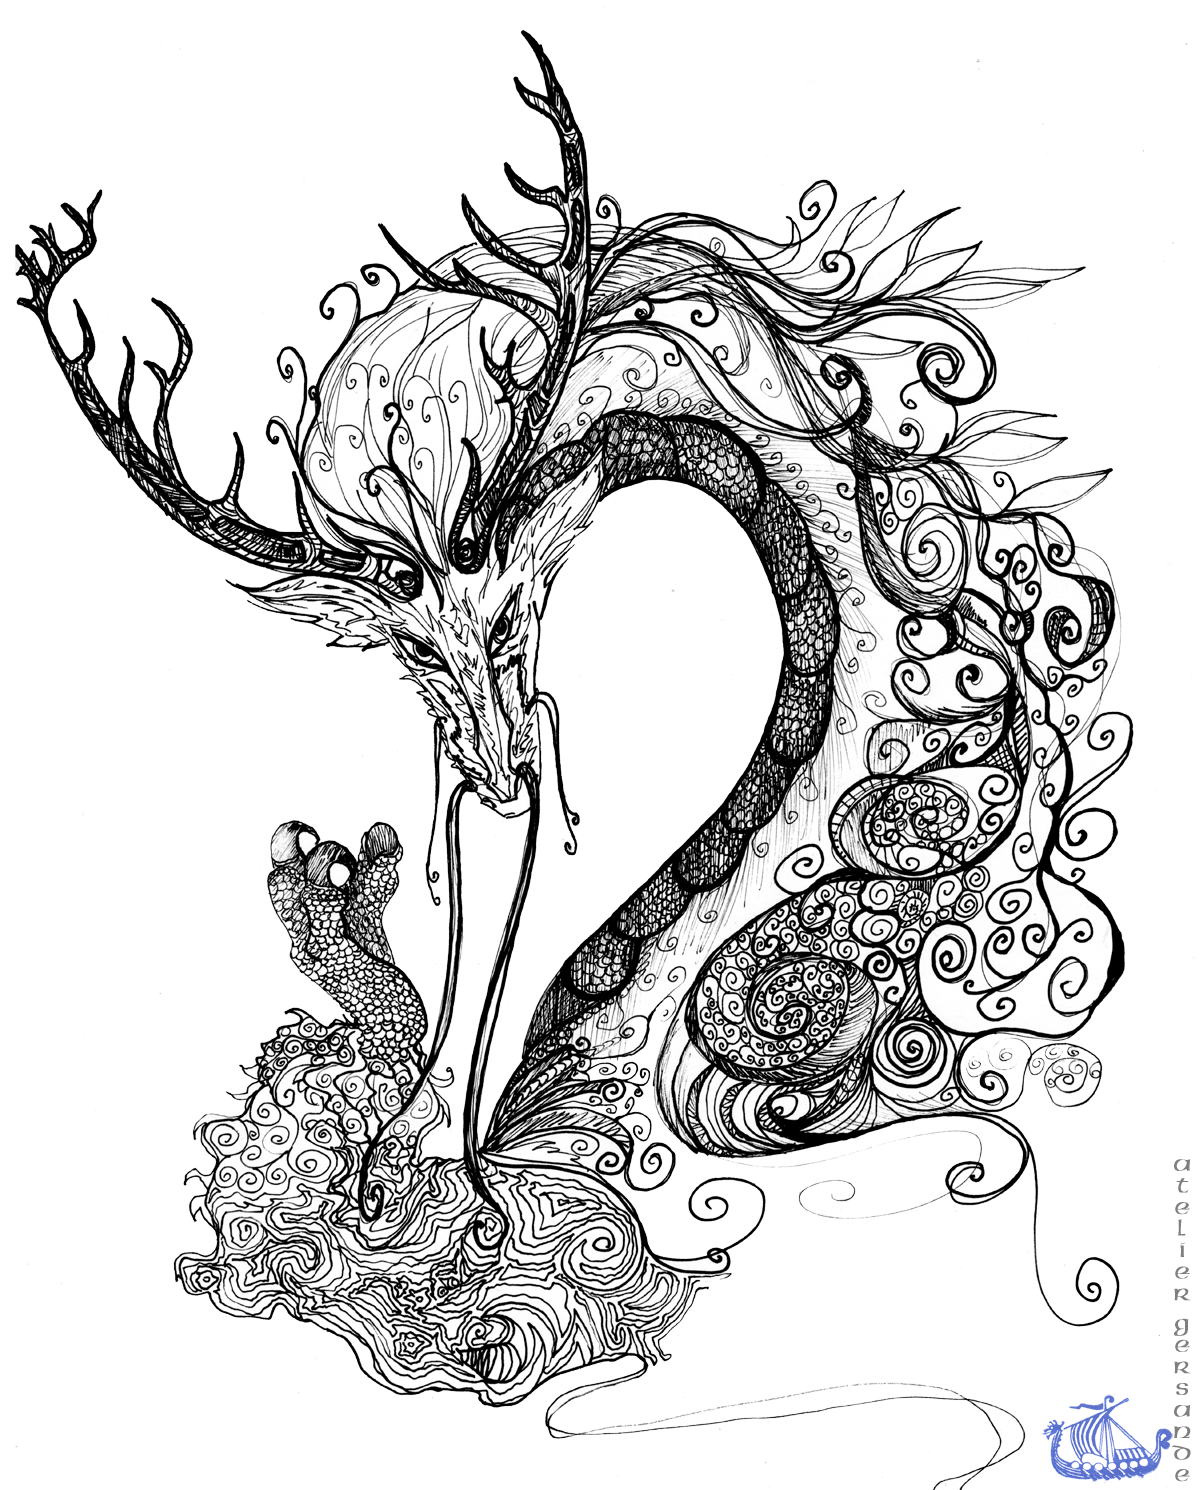 A drawing of a dragon with antlers and claws, and skin resembling seashells.